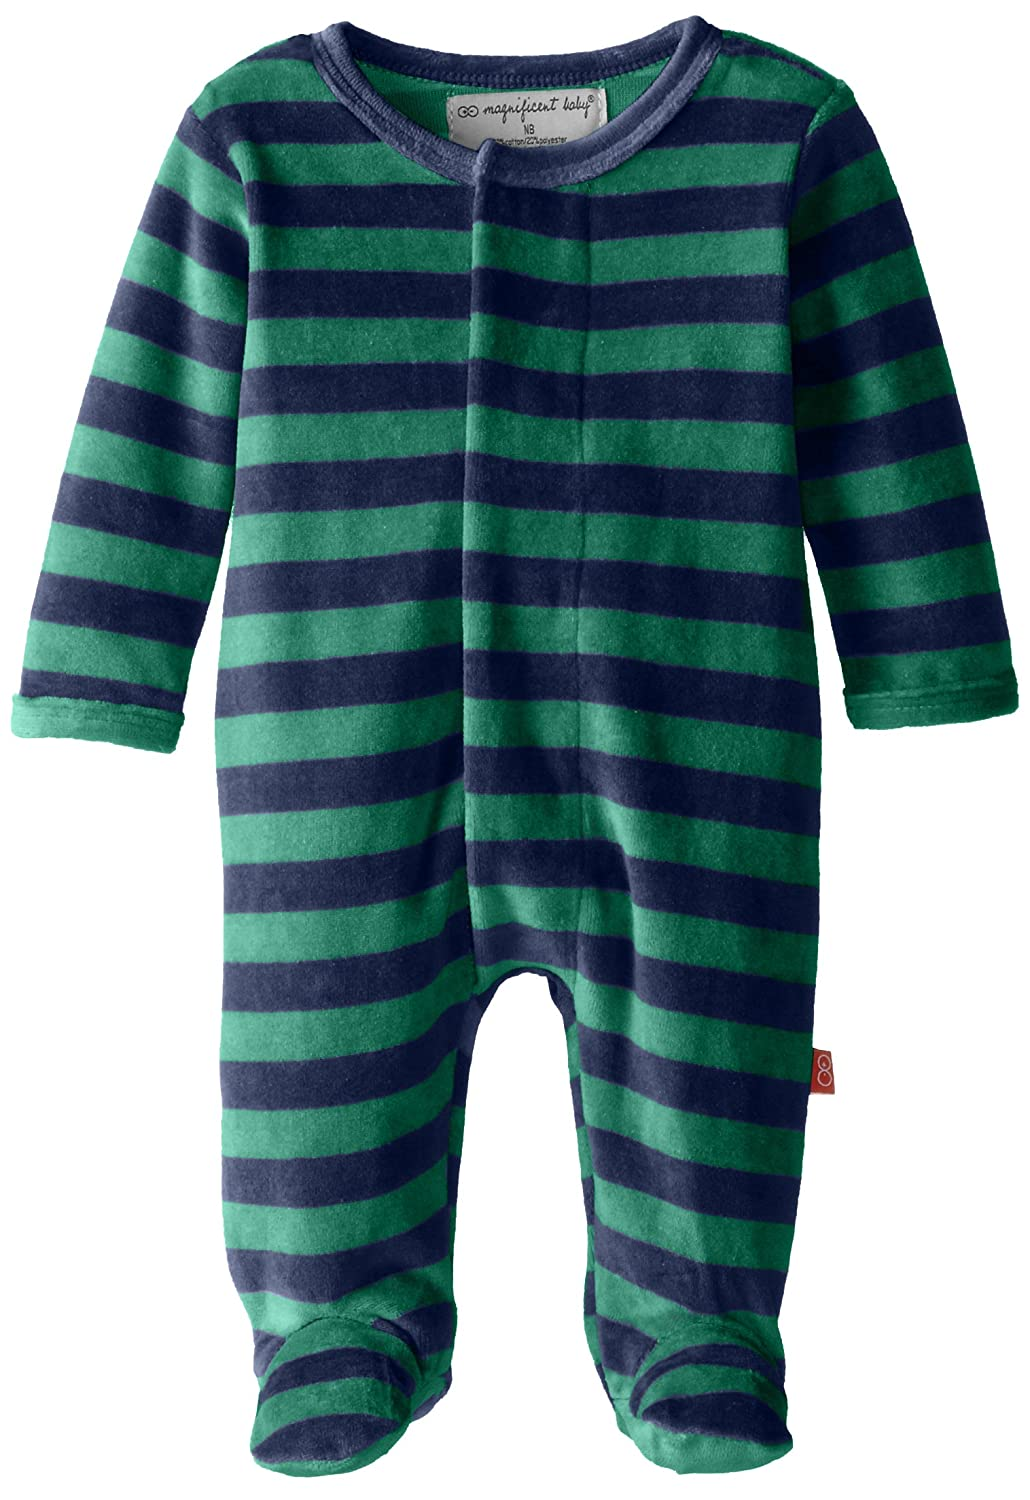 Magnificent Baby Baby-Girls Infant Velour Footie, Green/Navy, 9 Months 8014-B